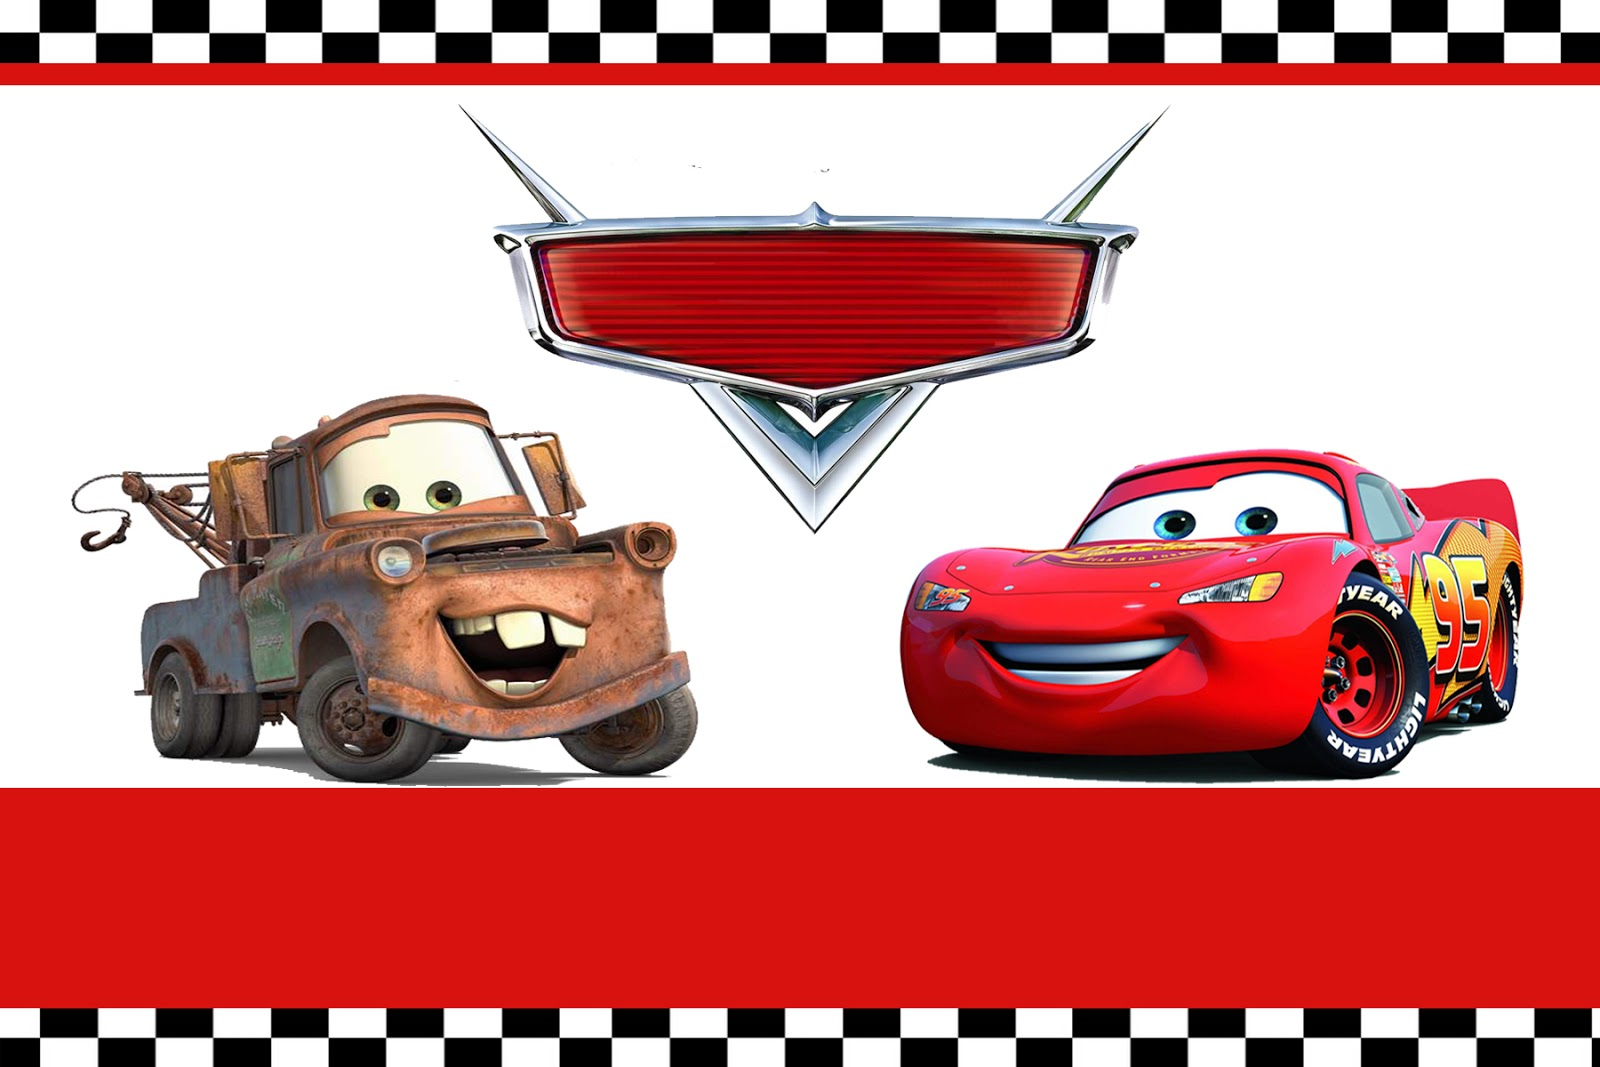 Disney pixar cars images cars hd wallpaper and background photos 35674421 - Image cars disney ...